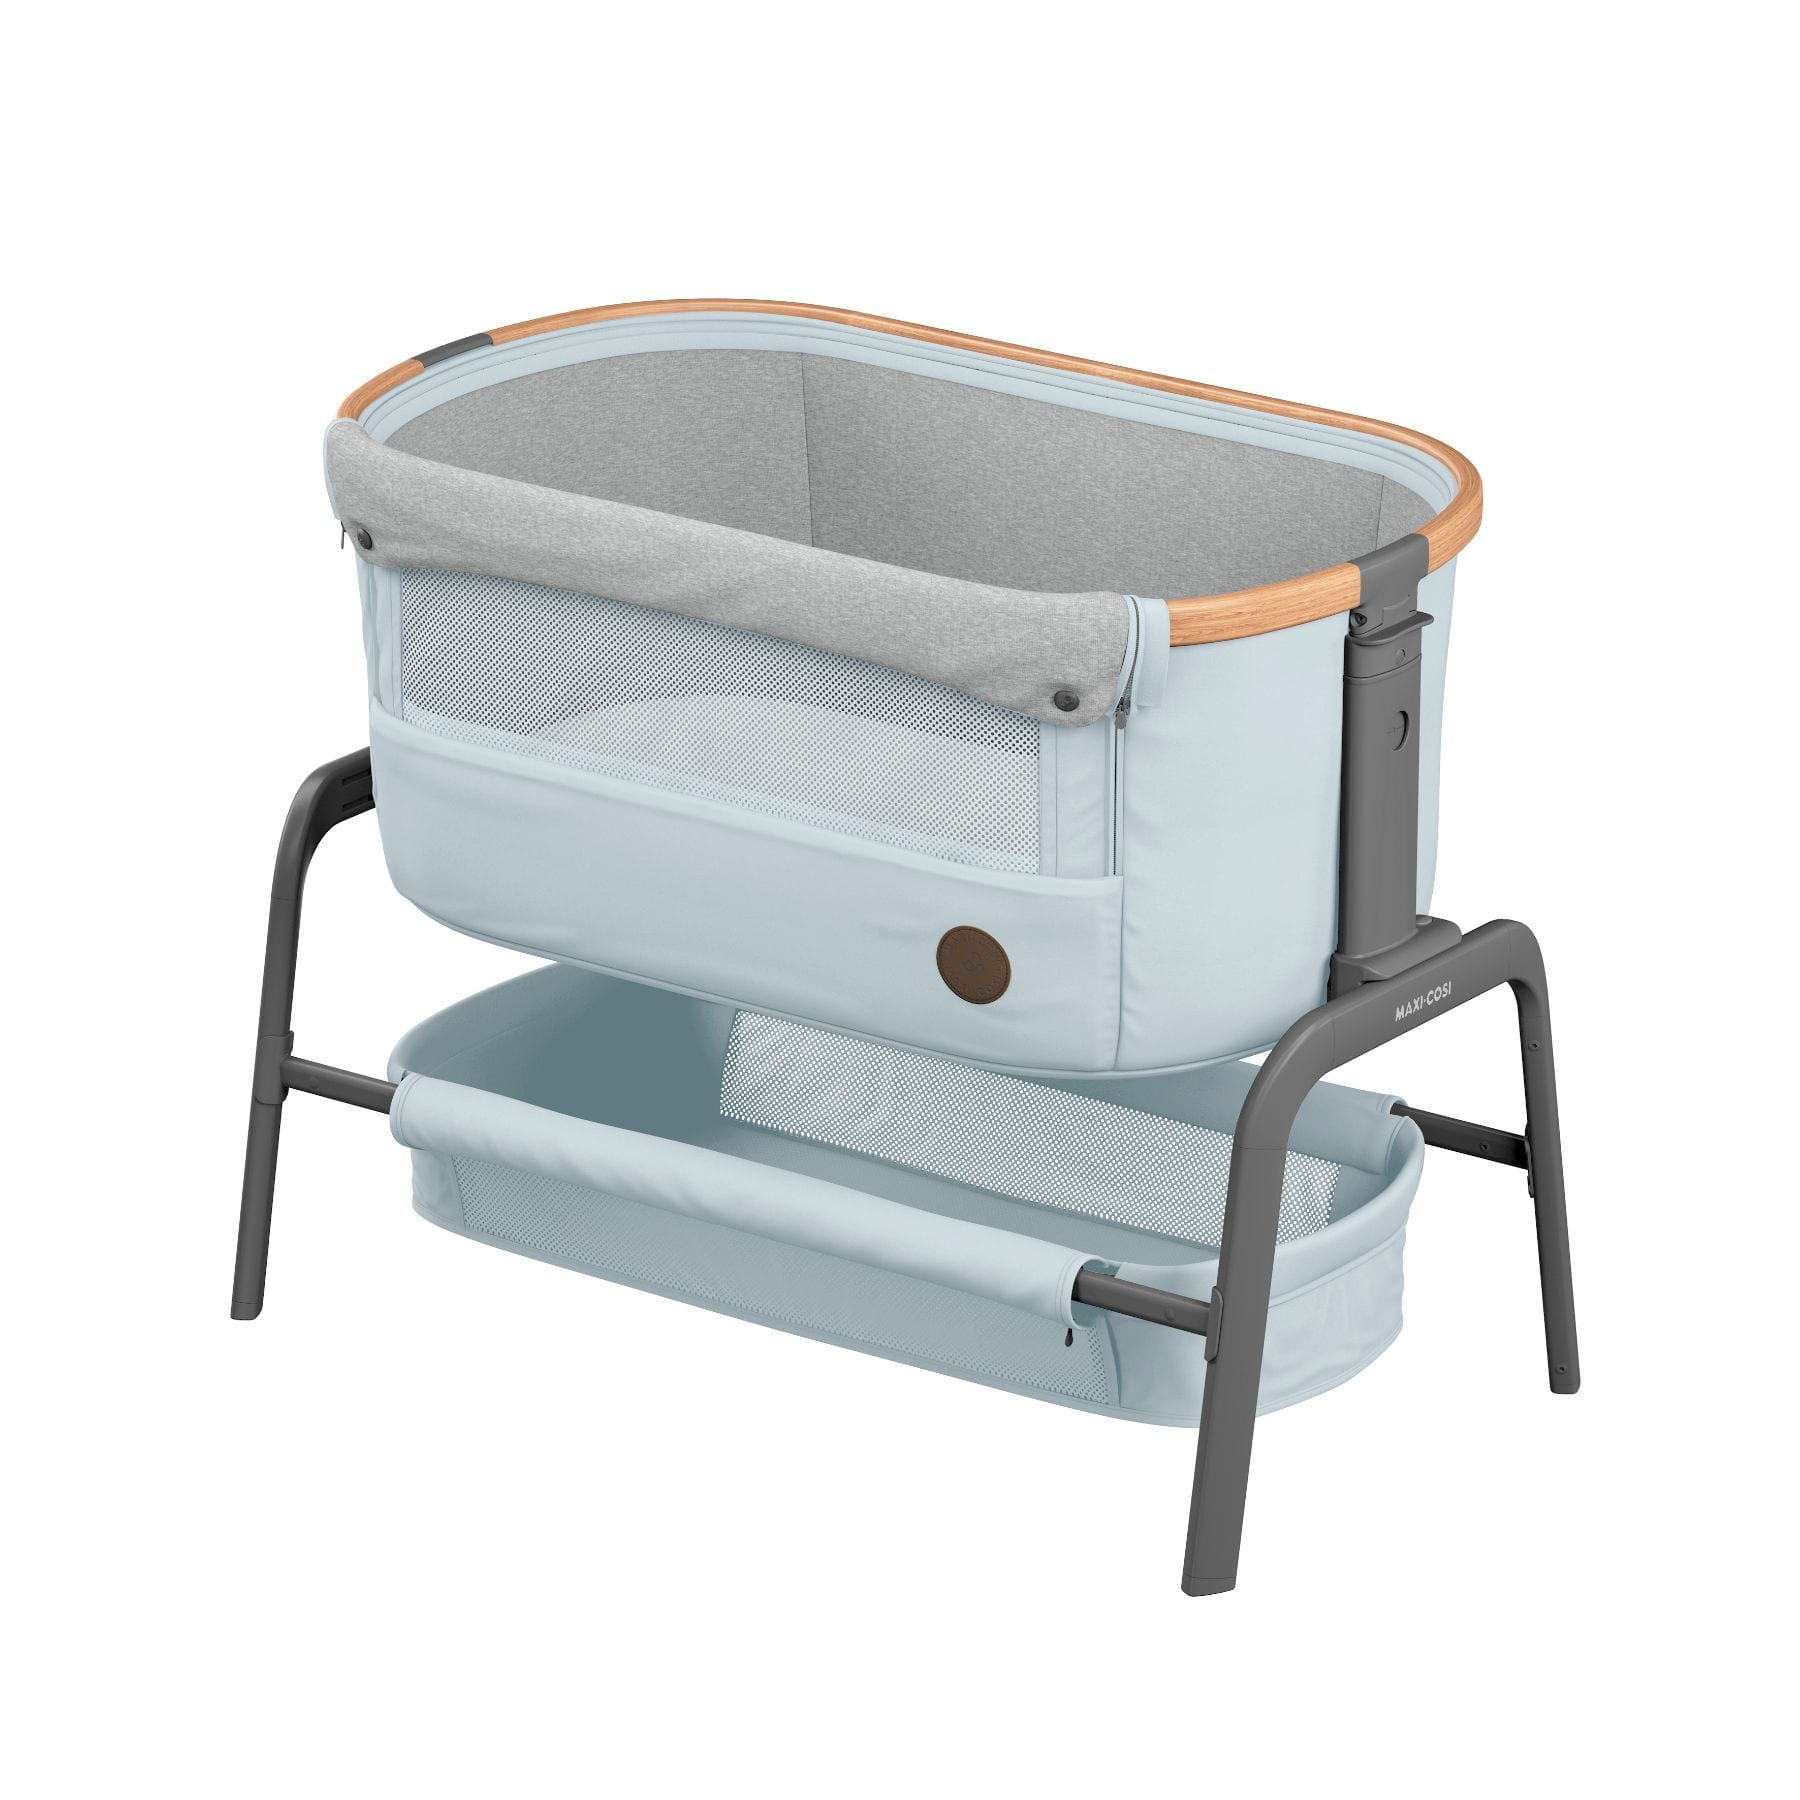 Maxi Cosi Iora Co-Sleeper - Essential Grey Gear Maxi Cosi